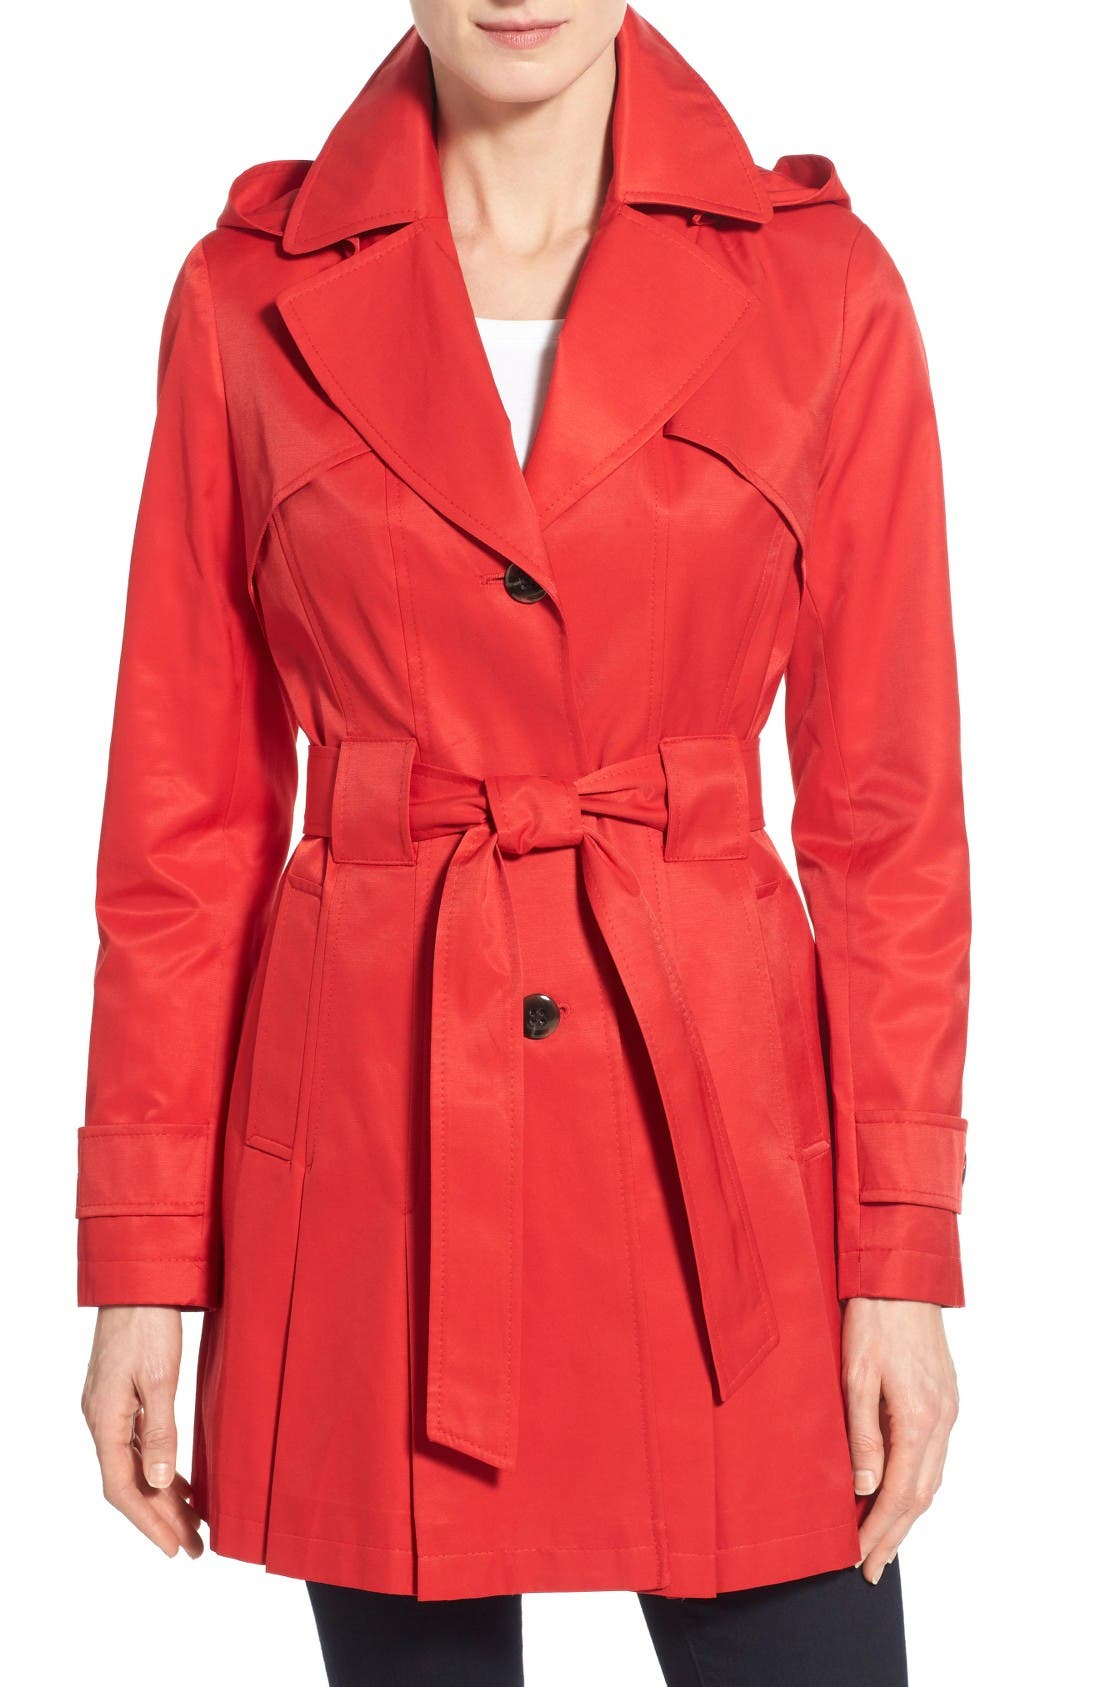 Alternate Image 1 Selected - Via Spiga 'Scarpa' Hooded Single Breasted Trench Coat (Regular & Petite)